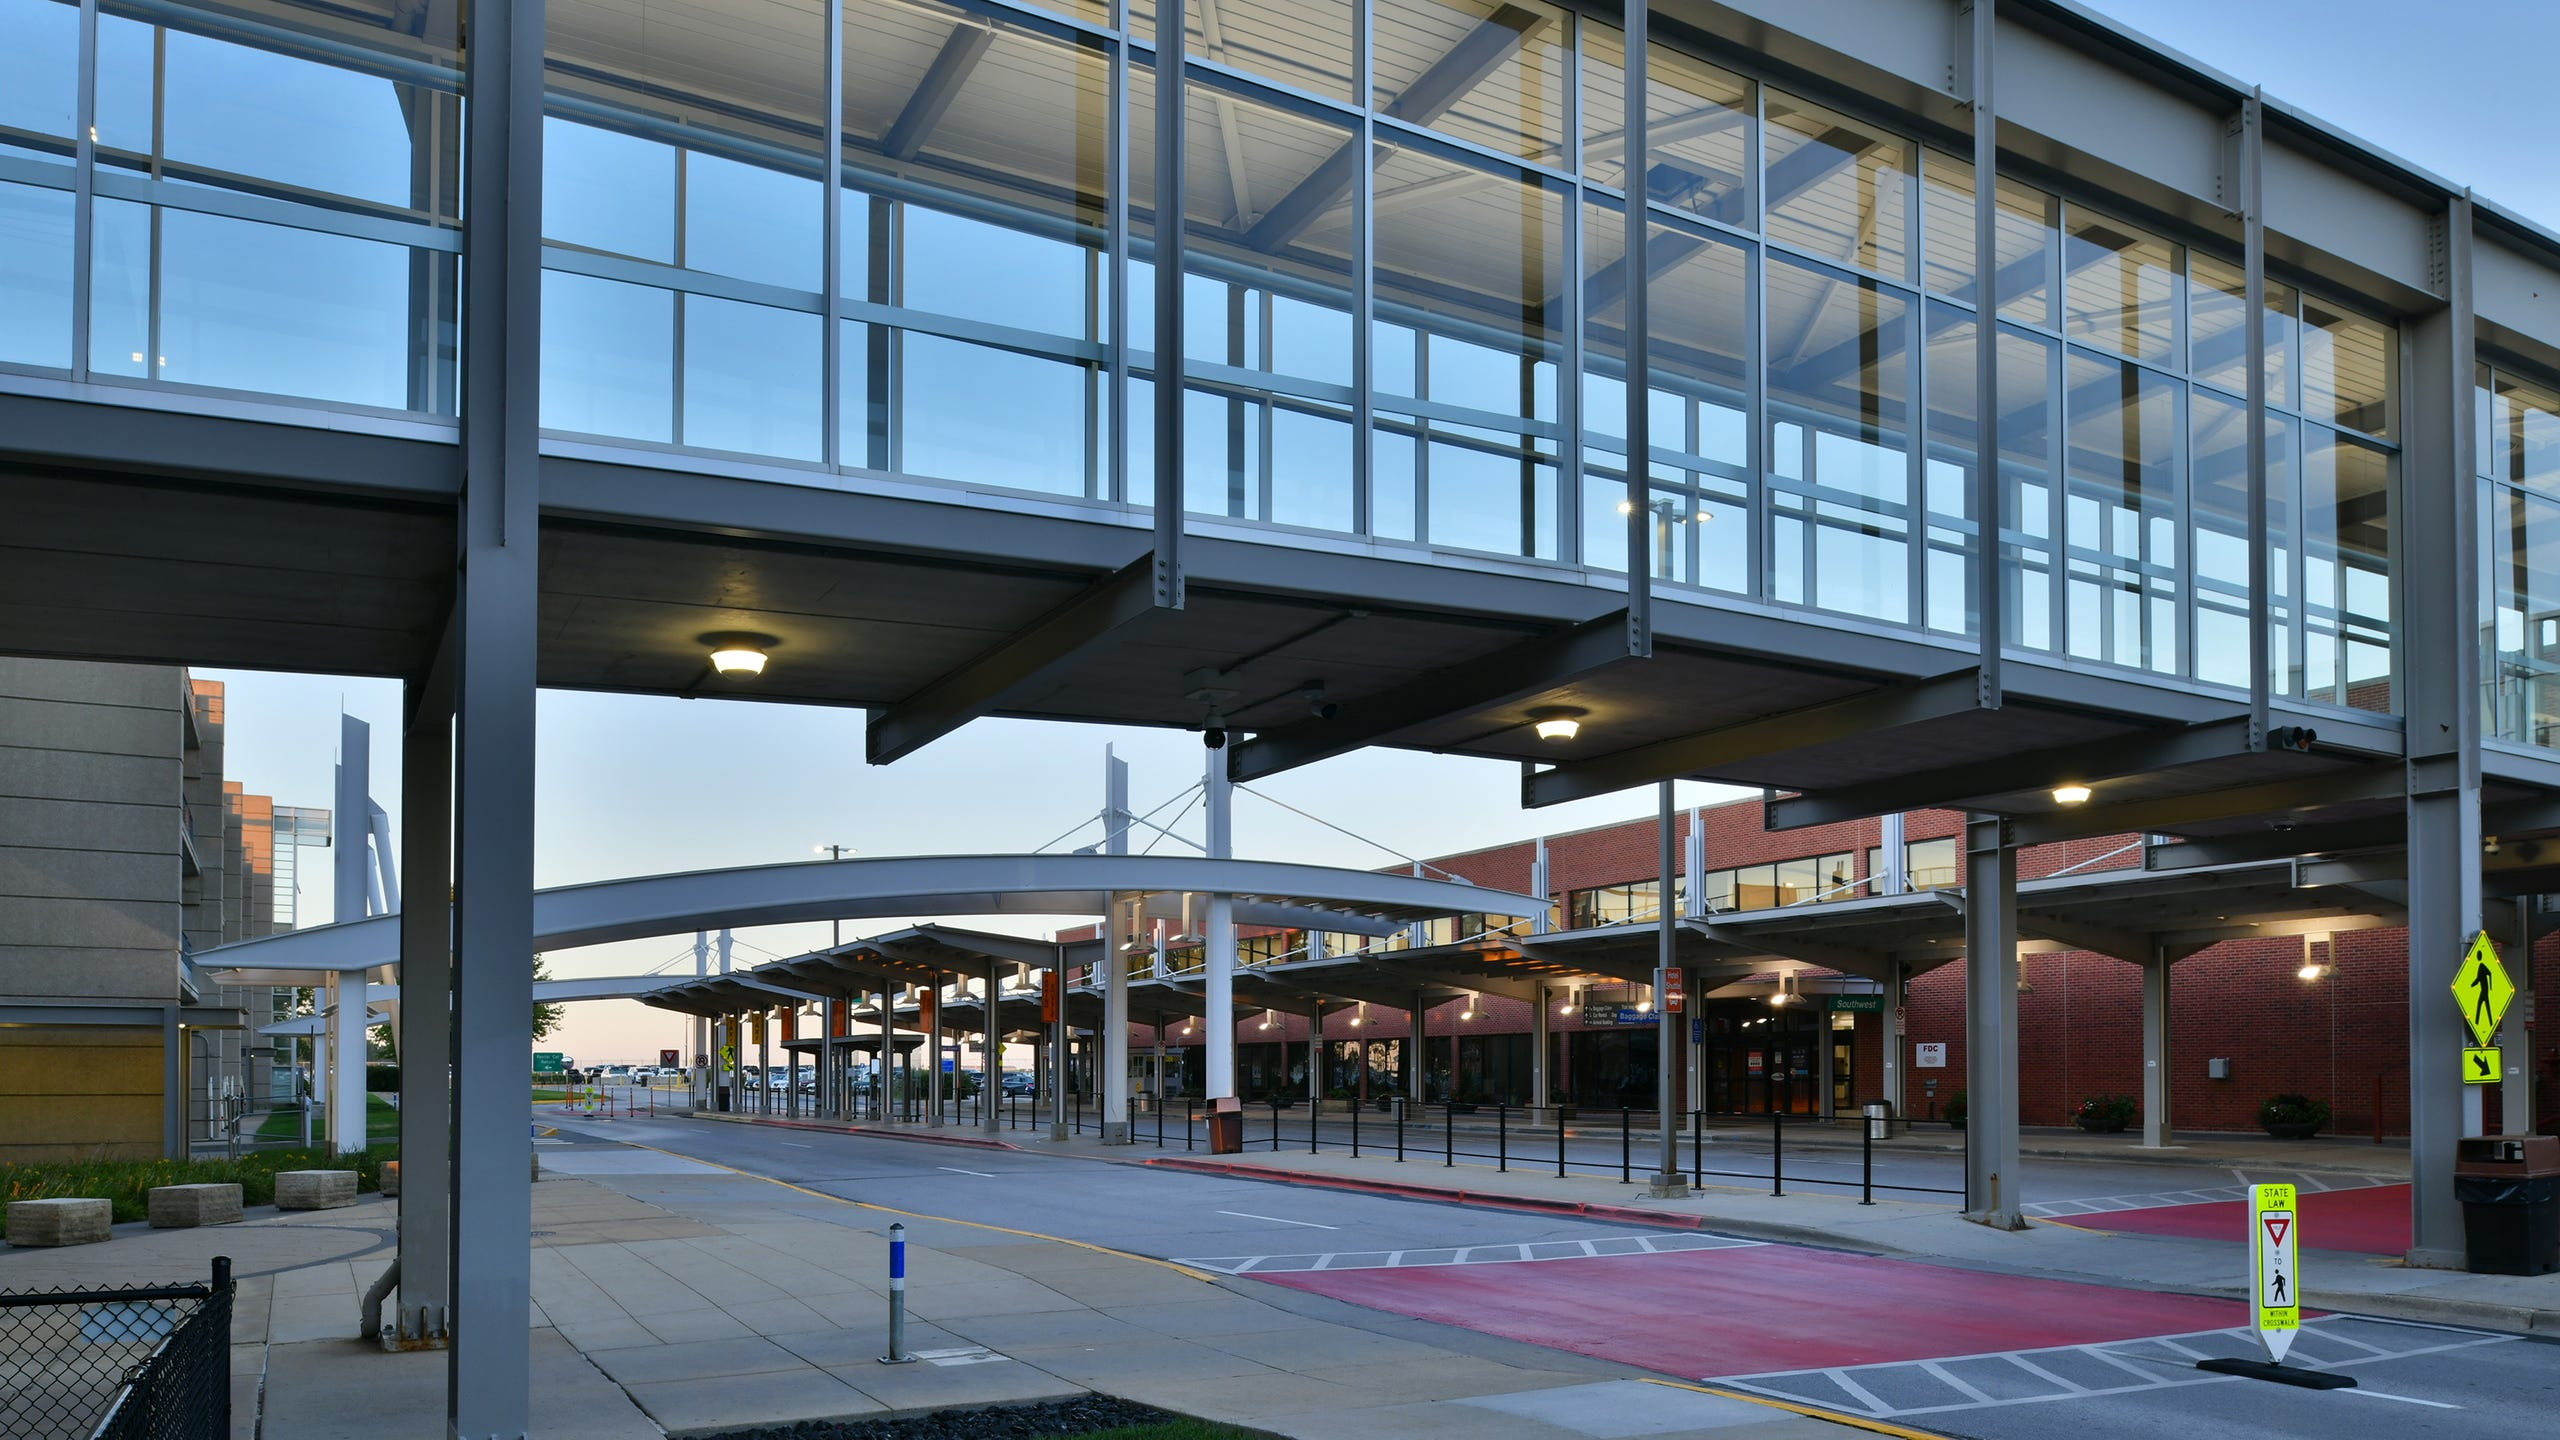 <strong>10. Des Moines International Airport</strong> (Des Moines, Iowa). Passengers can fly from Des Moines International Airport to more than 20 popular destinations around the country. American, Allegiant, Deltas, Frontier, Southwest and United serve the airport. Passengers enjoy amenities such as free Wi-Fi, shopping and a variety of dining options (including three full-service restaurants).